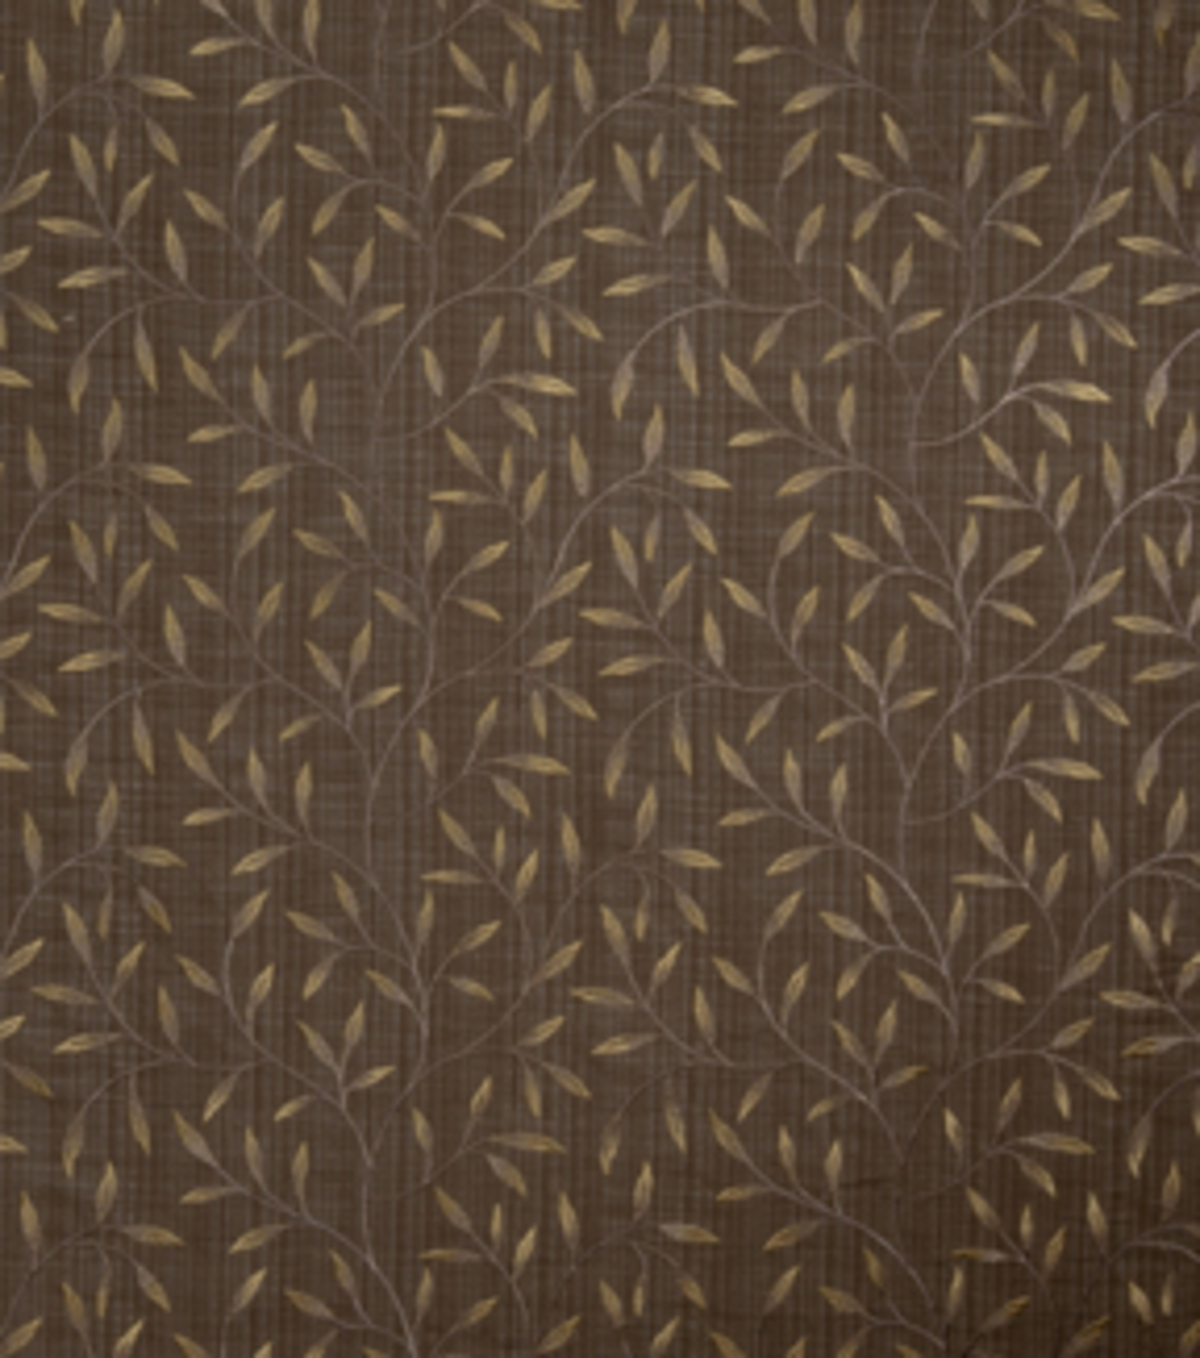 Home Decor 8\u0022x8\u0022 Fabric Swatch-SMC Designs Abigail / Foliage